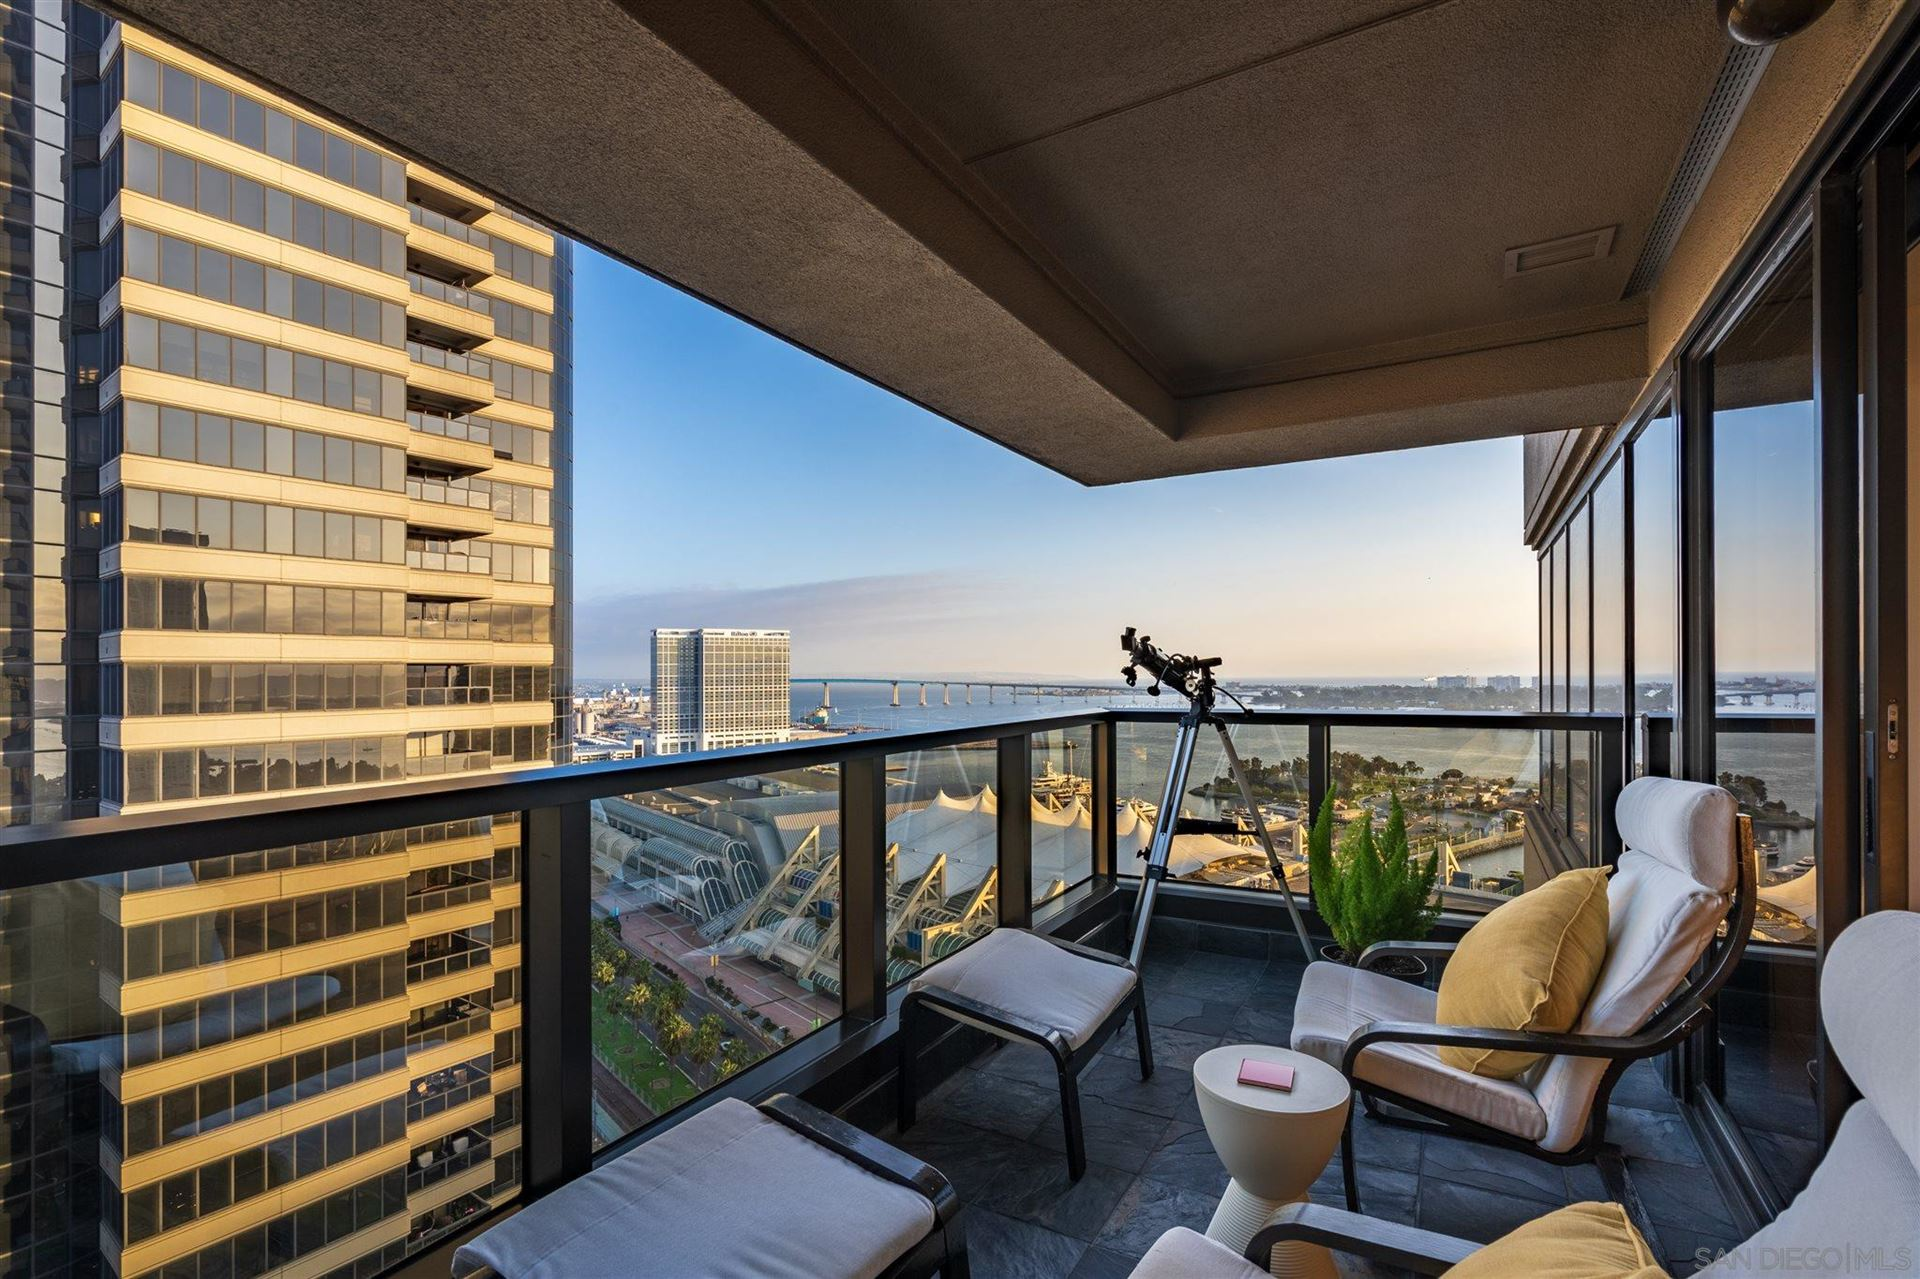 Photo for 100 Harbor Dr #2506, San Diego, CA 92101 (MLS # 200049759)